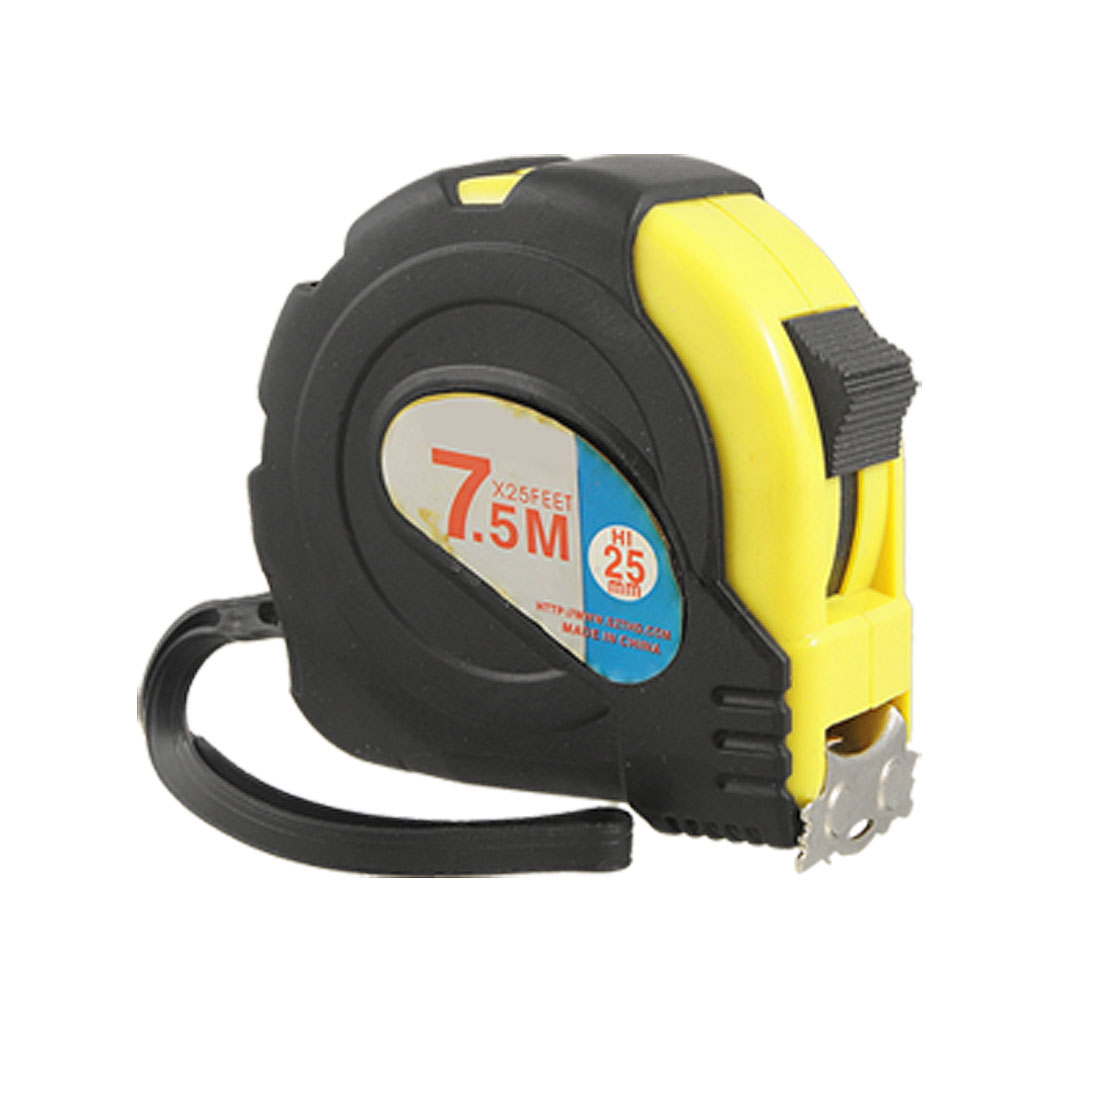 Retractable 7.5M Dual Scale Steel Construction Measuring Tape